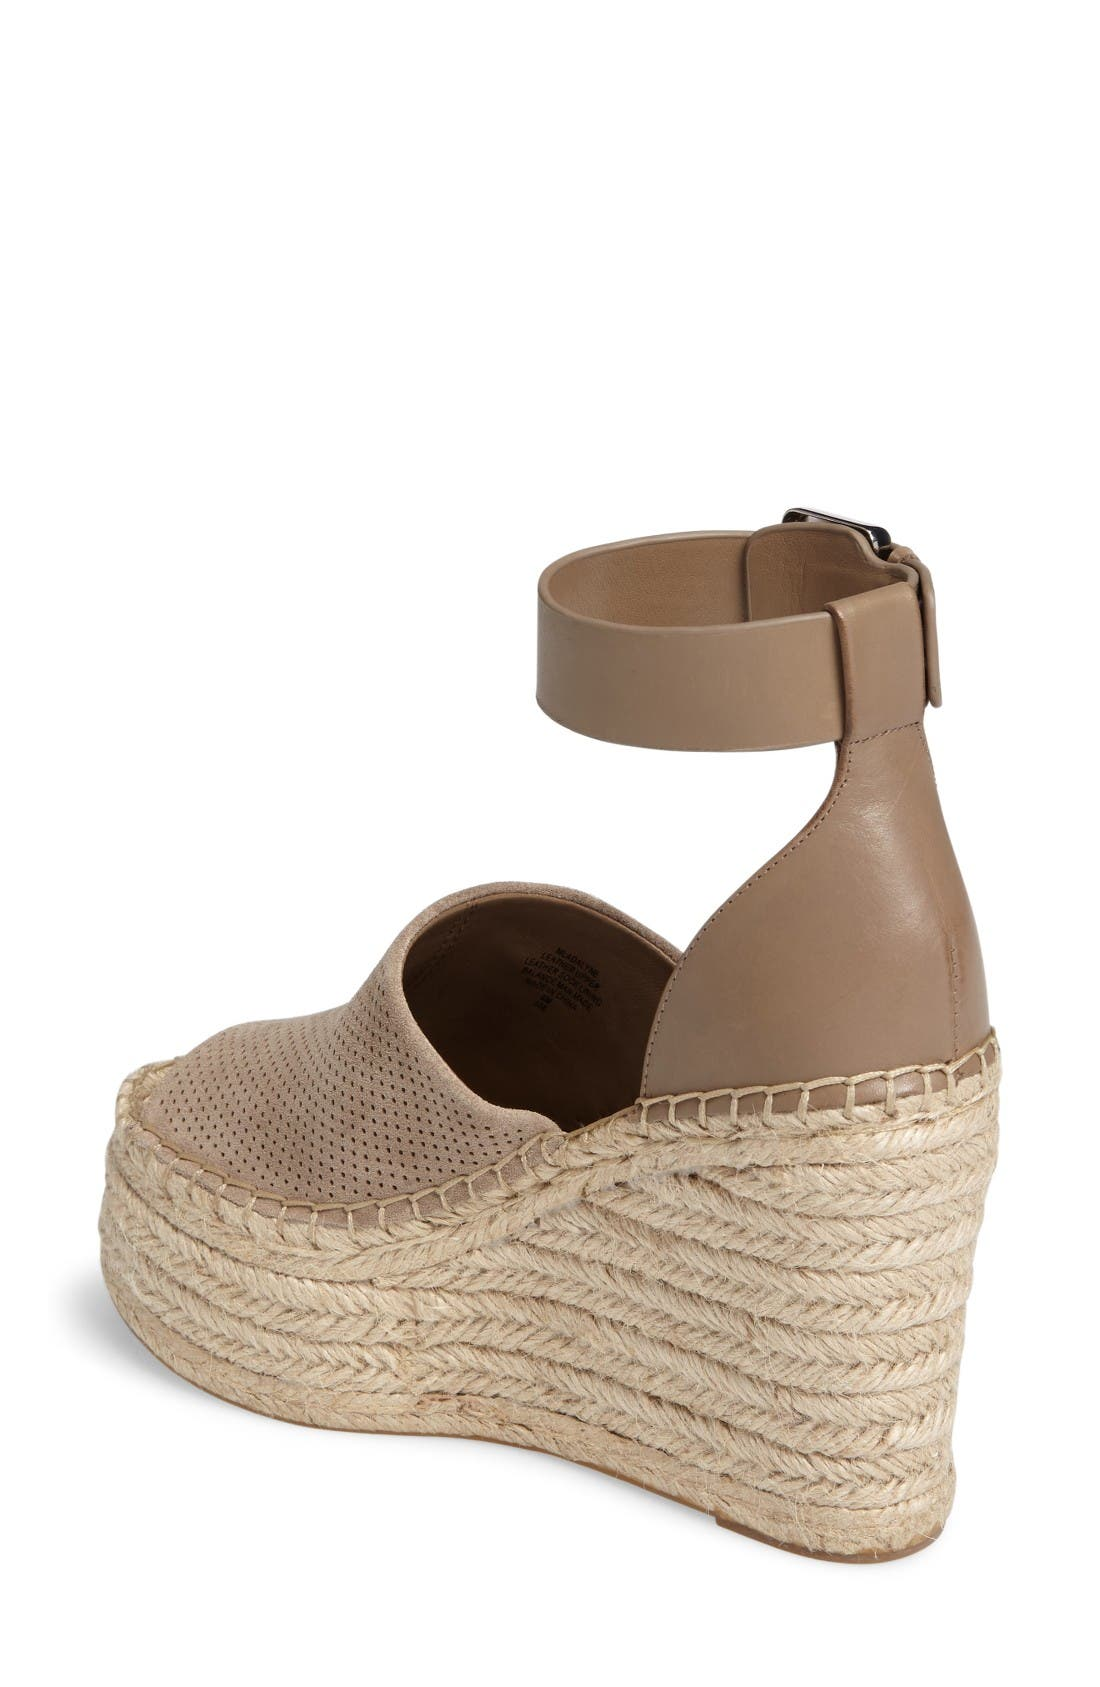 Adalyne Platform Wedge,                             Alternate thumbnail 2, color,                             Tan Suede